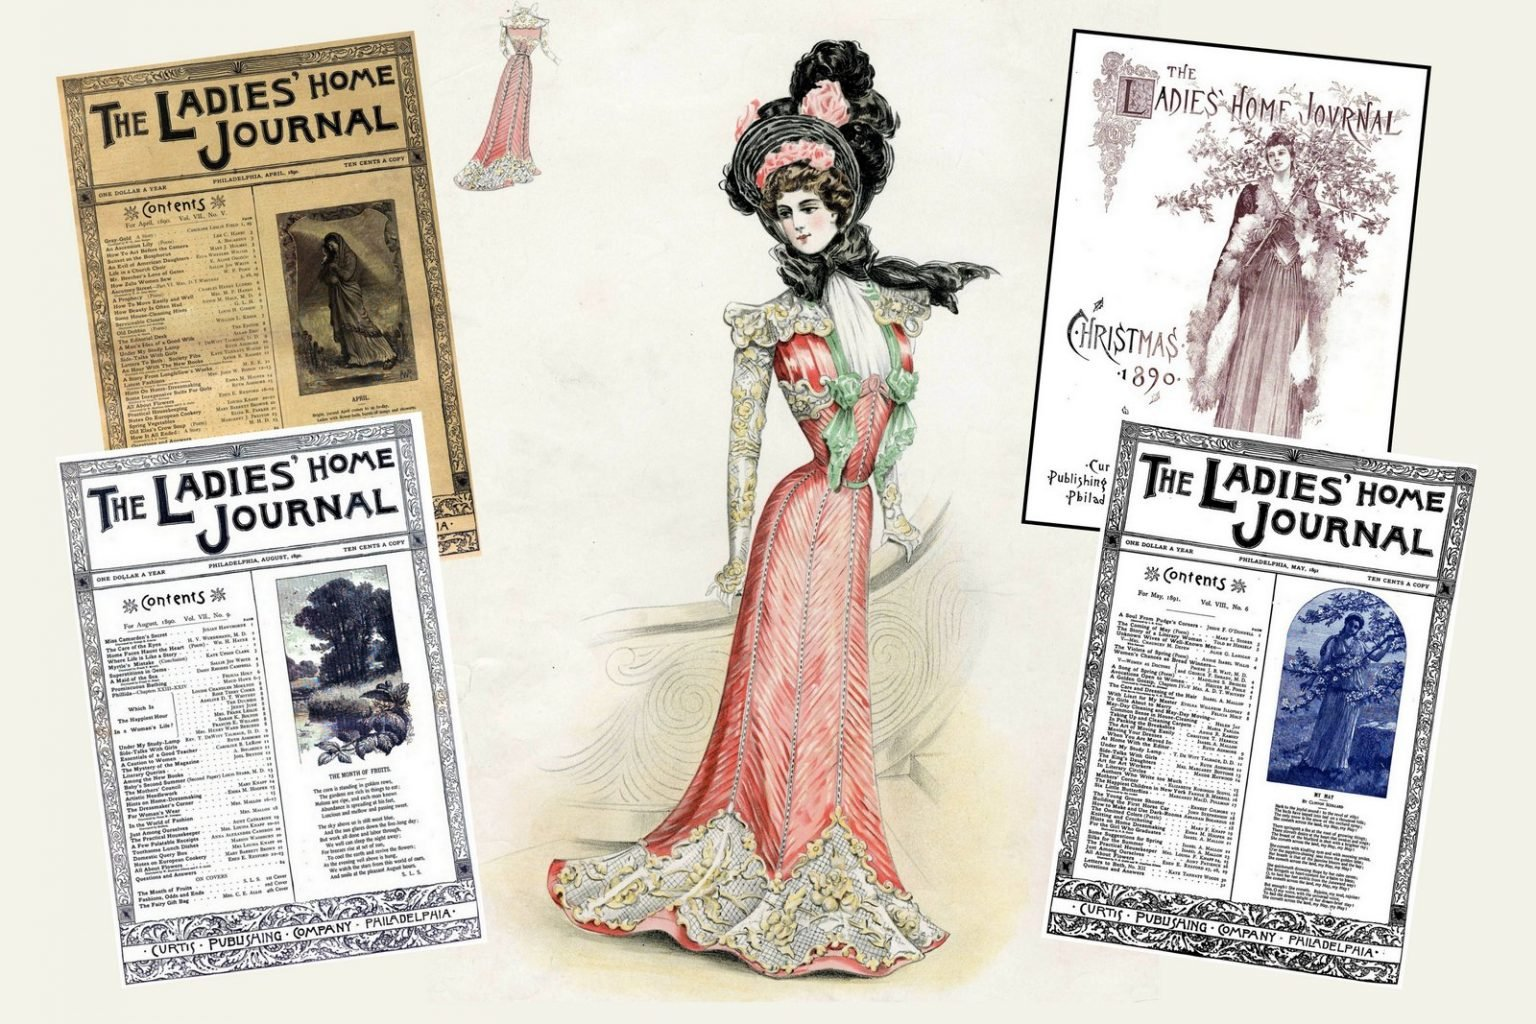 Antique Ladies' Home Journal magazine covers from the Victorian era